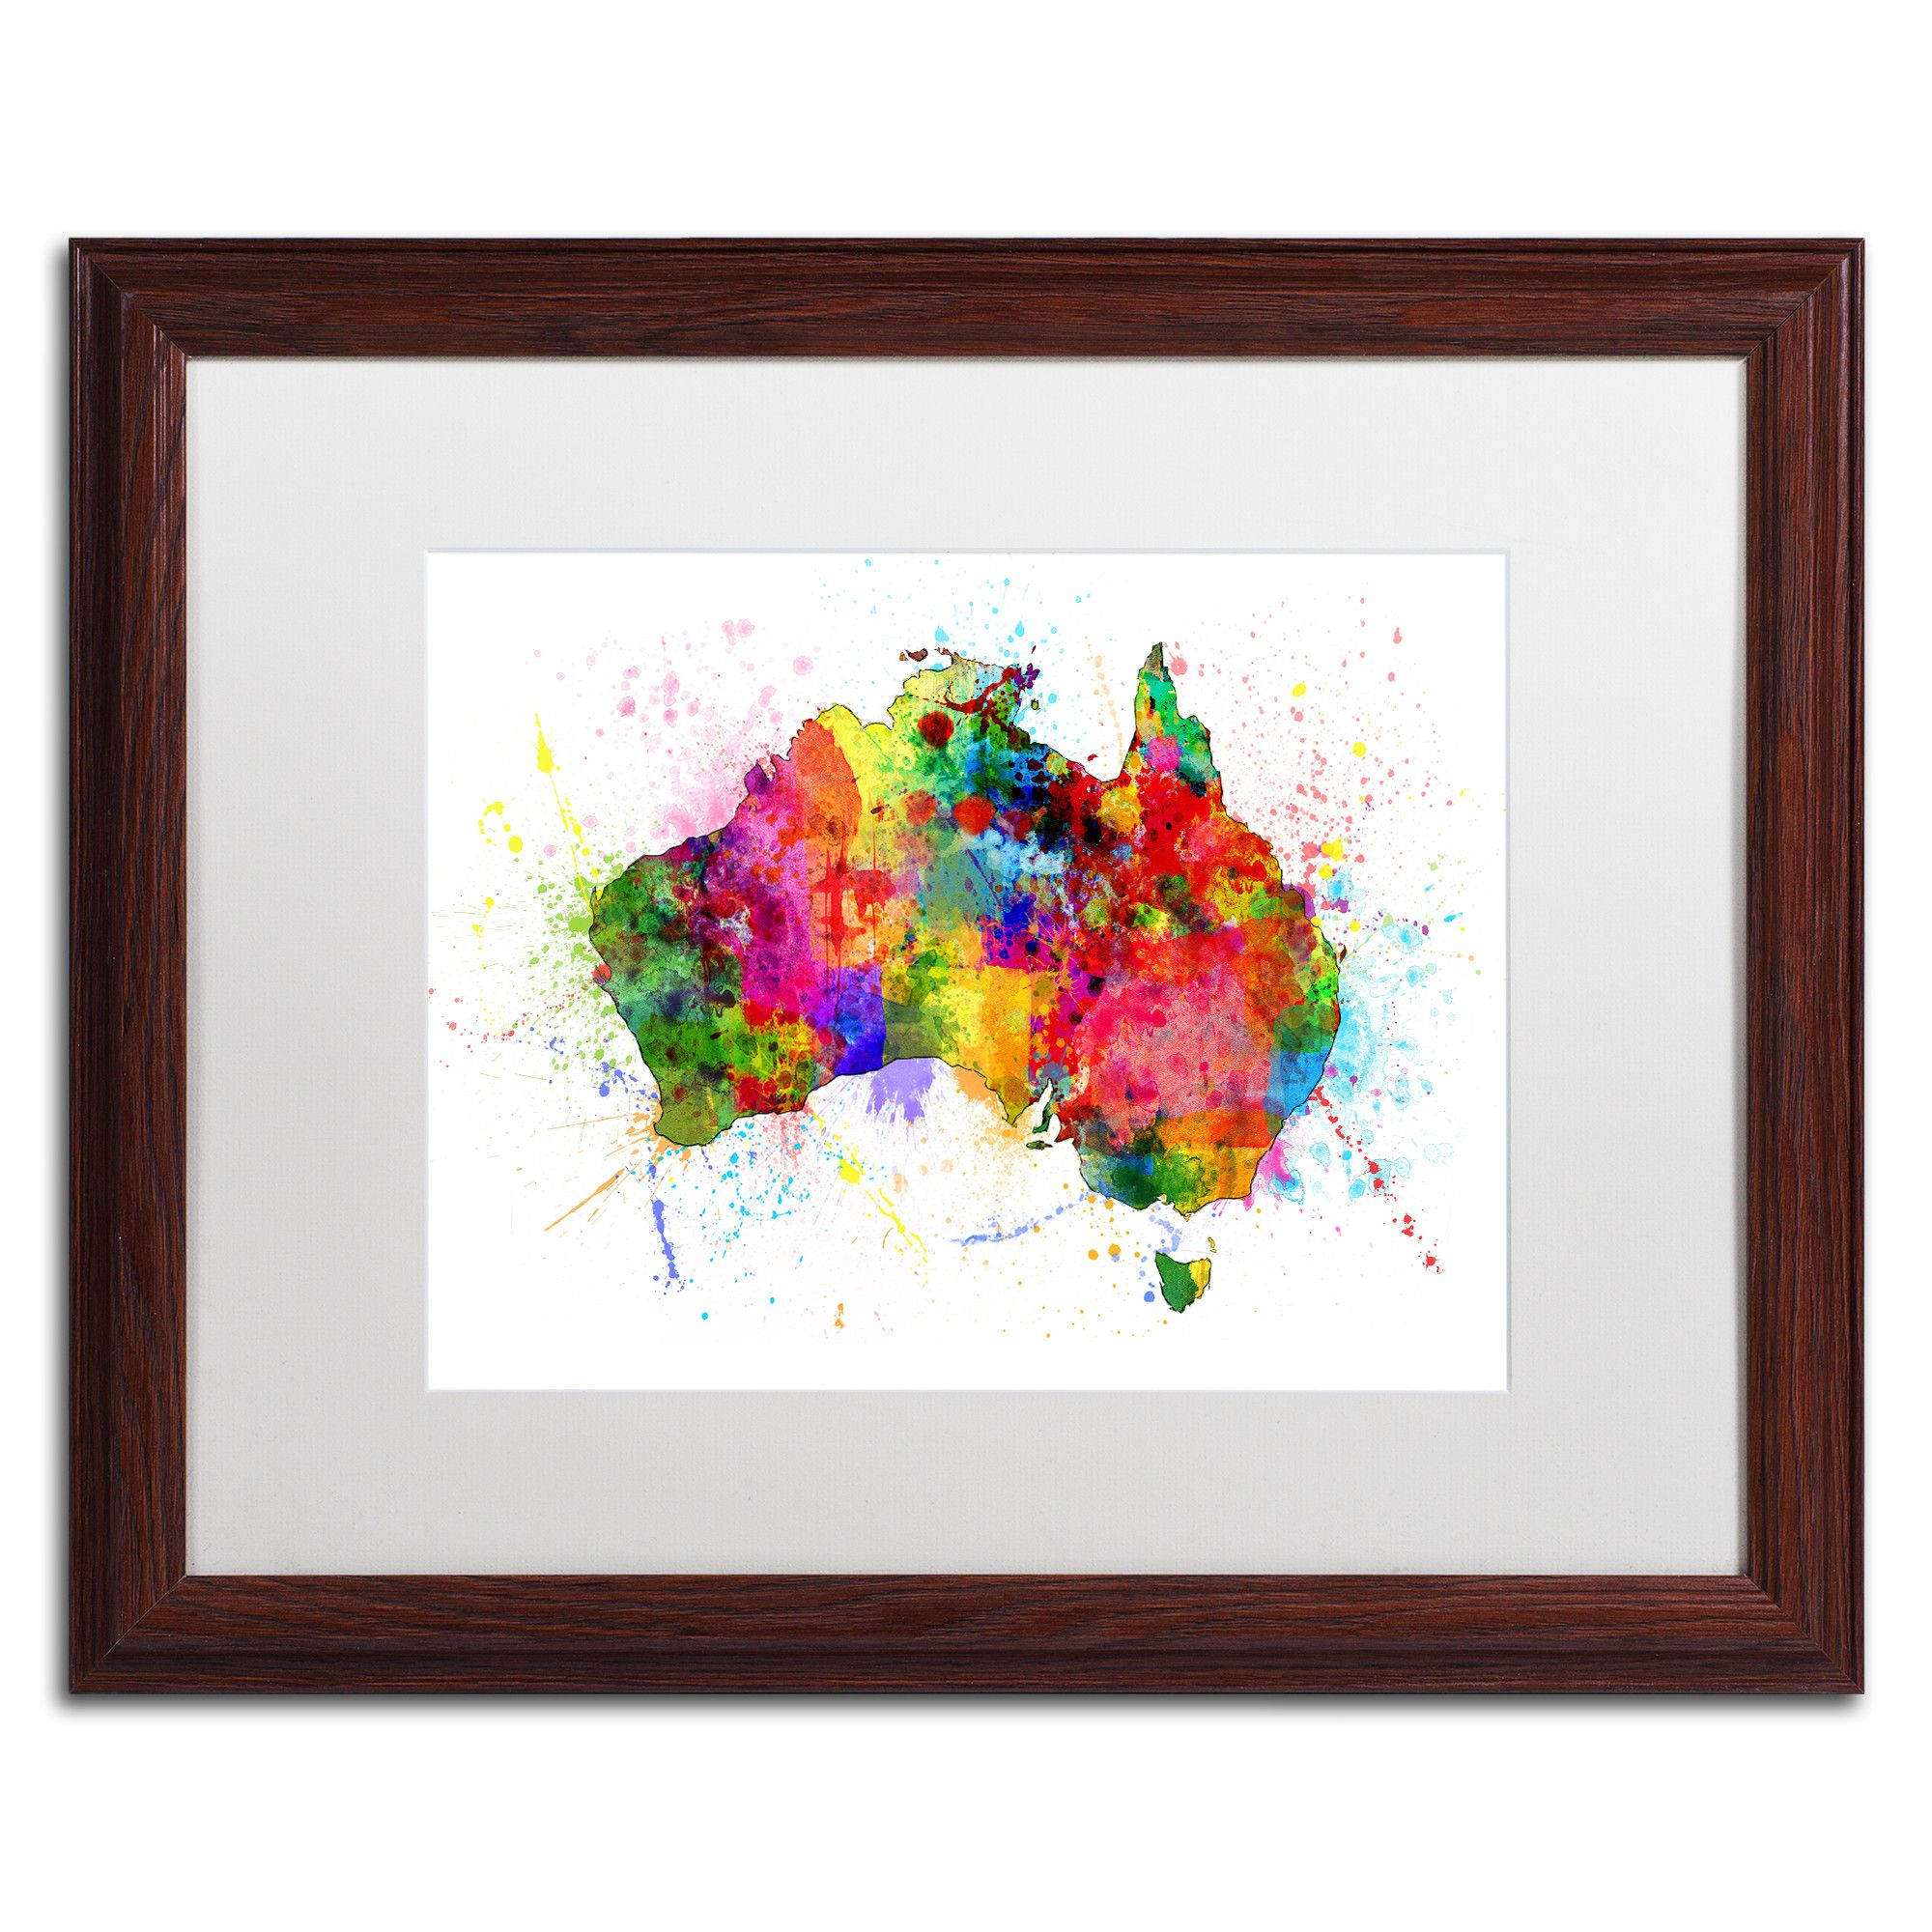 Australia paint splashes map by michael tompsett framed graphic art australia paint splashes map by michael tompsett framed graphic art gumiabroncs Image collections